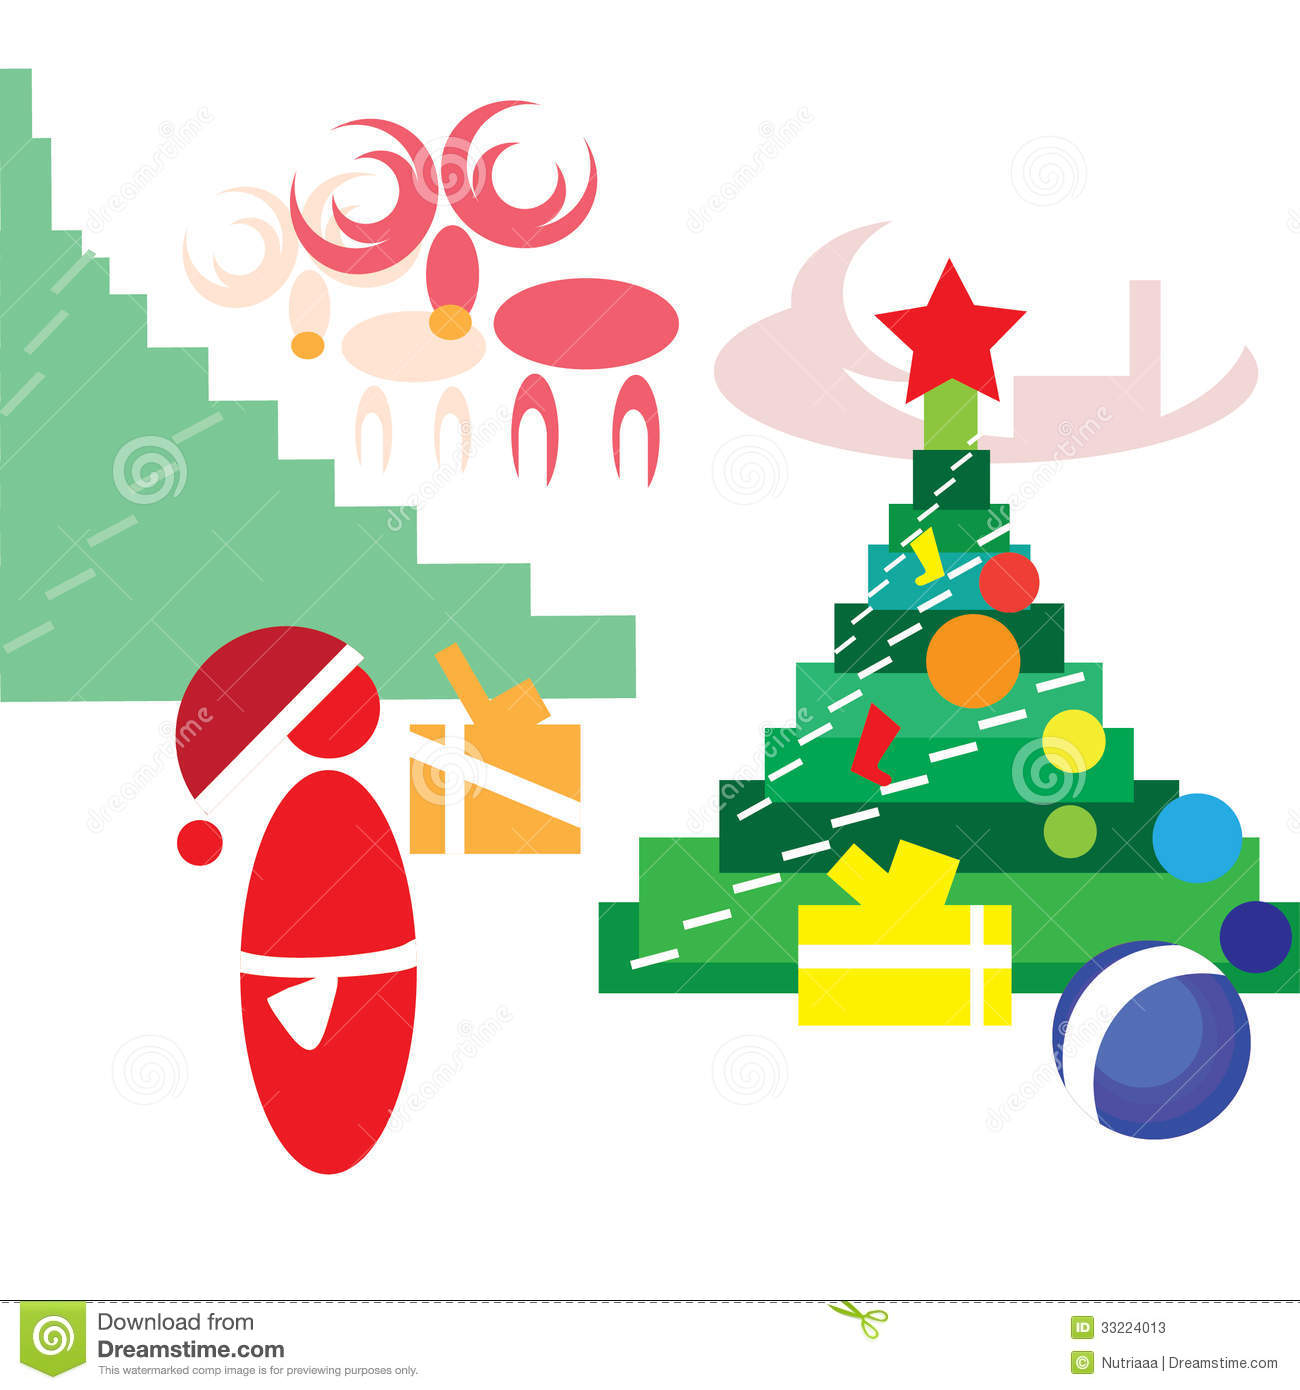 Presents Under The Christmas Tree: Santa Claus Putting Gifts Under The Christmas Tree Stock